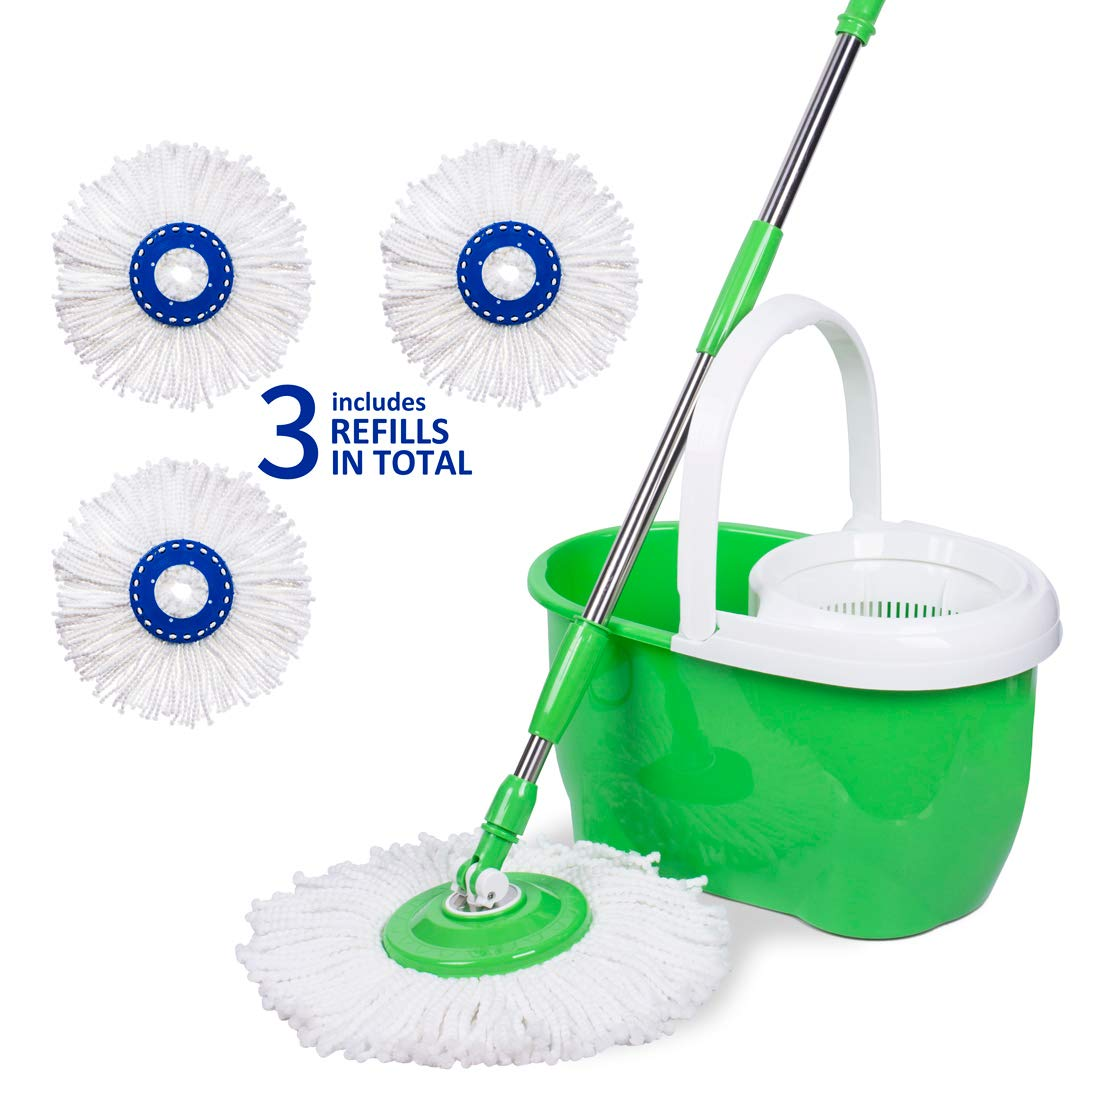 Spin Mop Bucket with Wringer Set, Hand-Free Washing & Drying, 360° Spinning Mop Head for Easy Floor Cleaning, Thickened Sturdy Stable Bucket with Carry Handle, 3 Replacement Mop Heads Included, Green